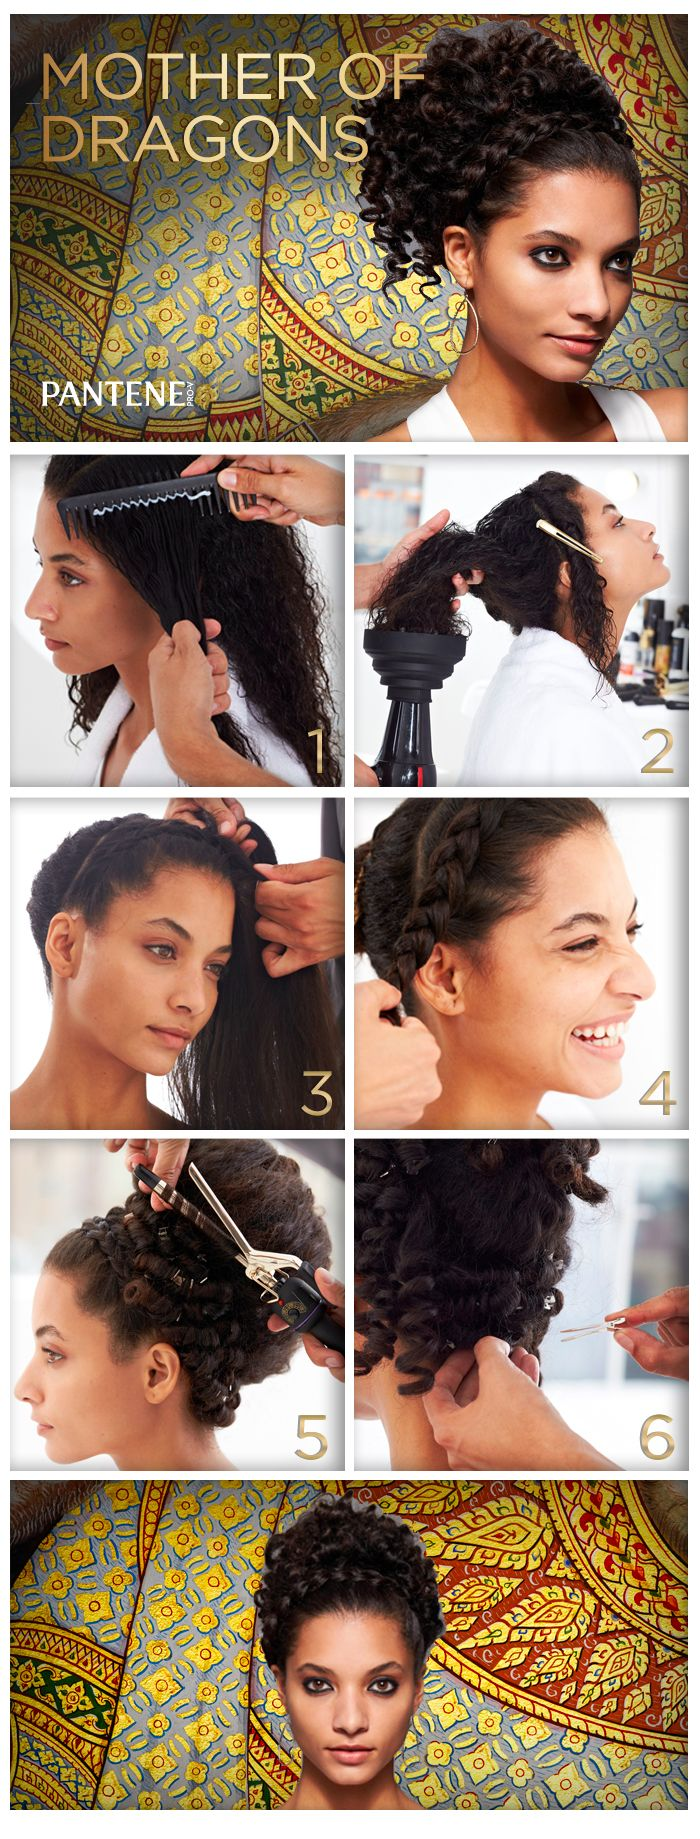 Just a little extra curl can make your hair the mane event. Dress up your GOT or Glam Greek Goddess costume with these curls that are taken to great heights.